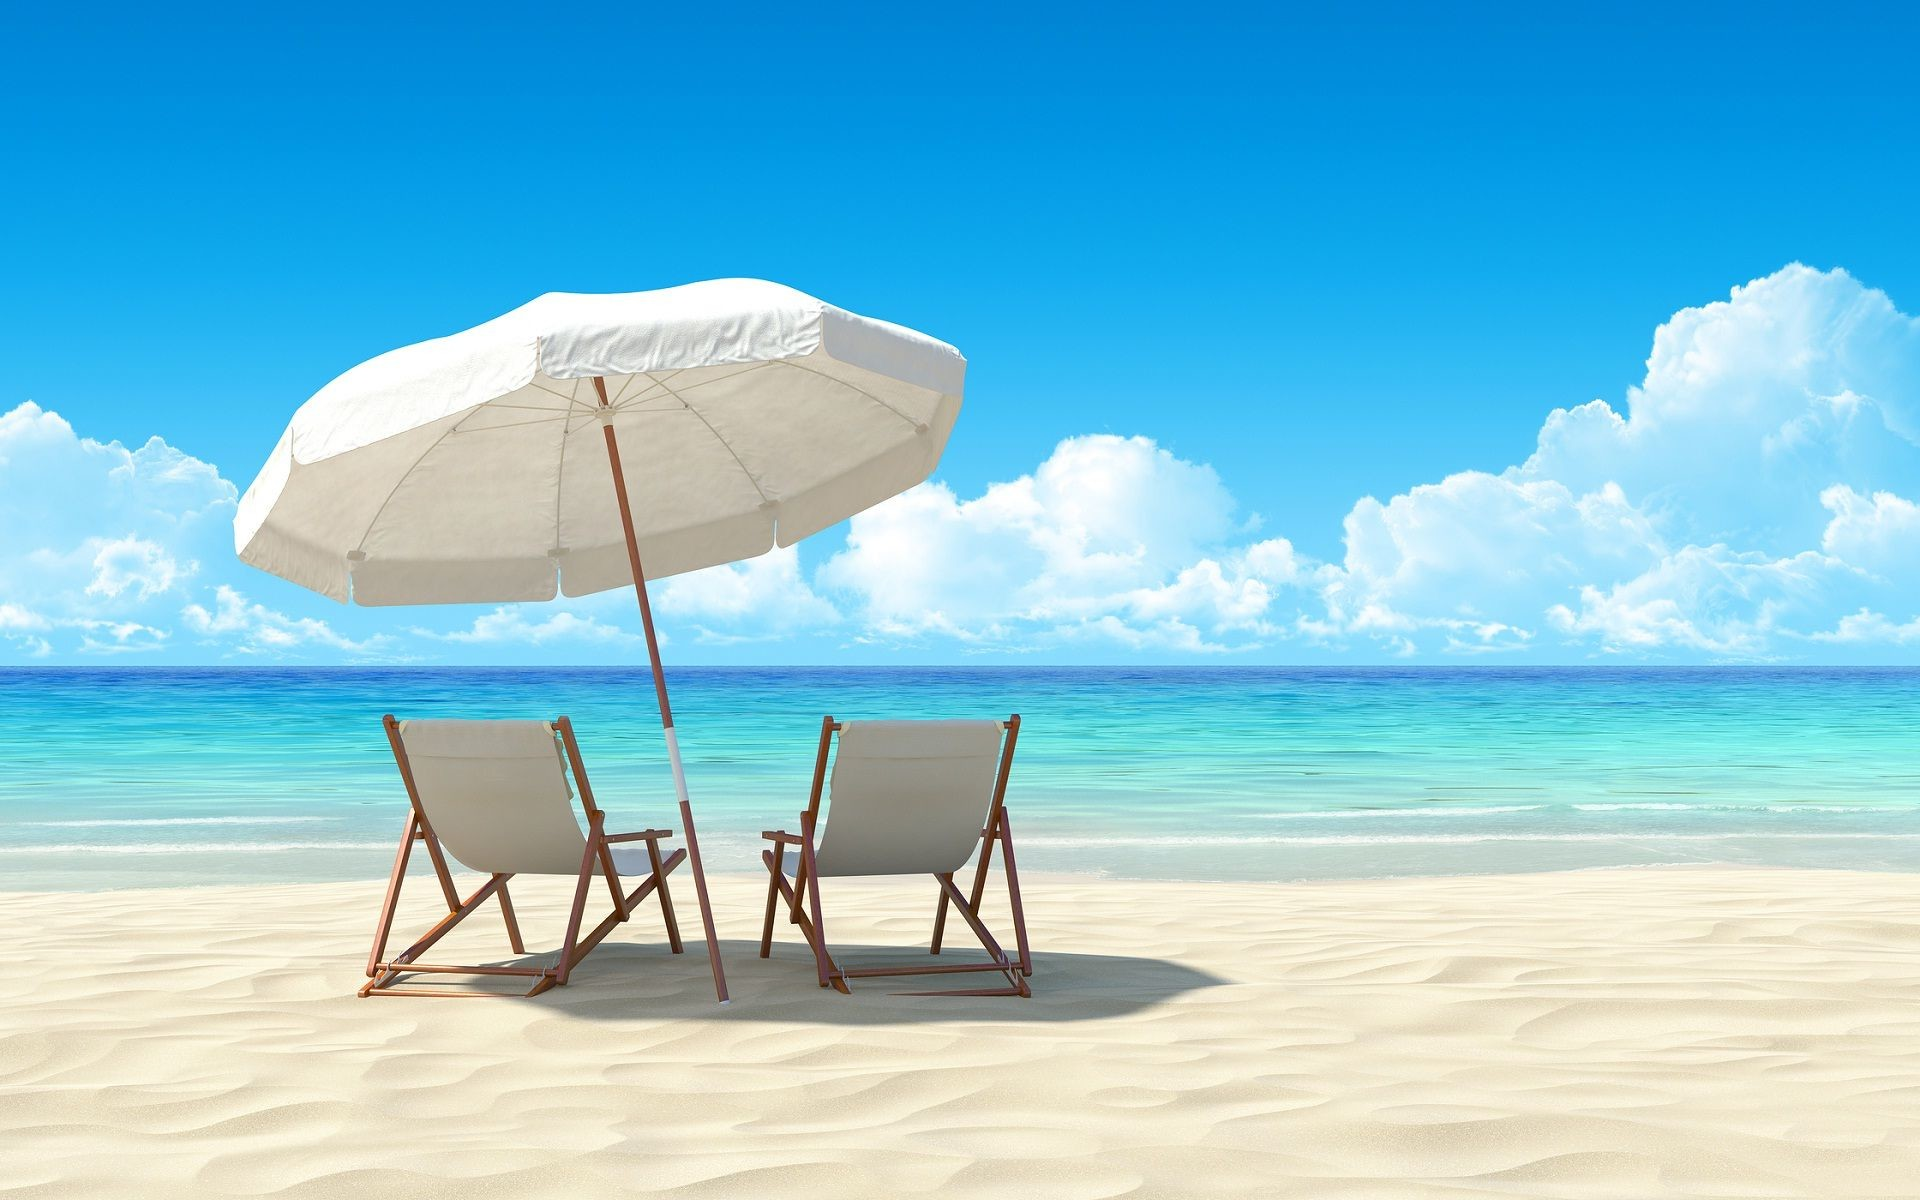 1920x1200 Beaches Hd wallpaper for download